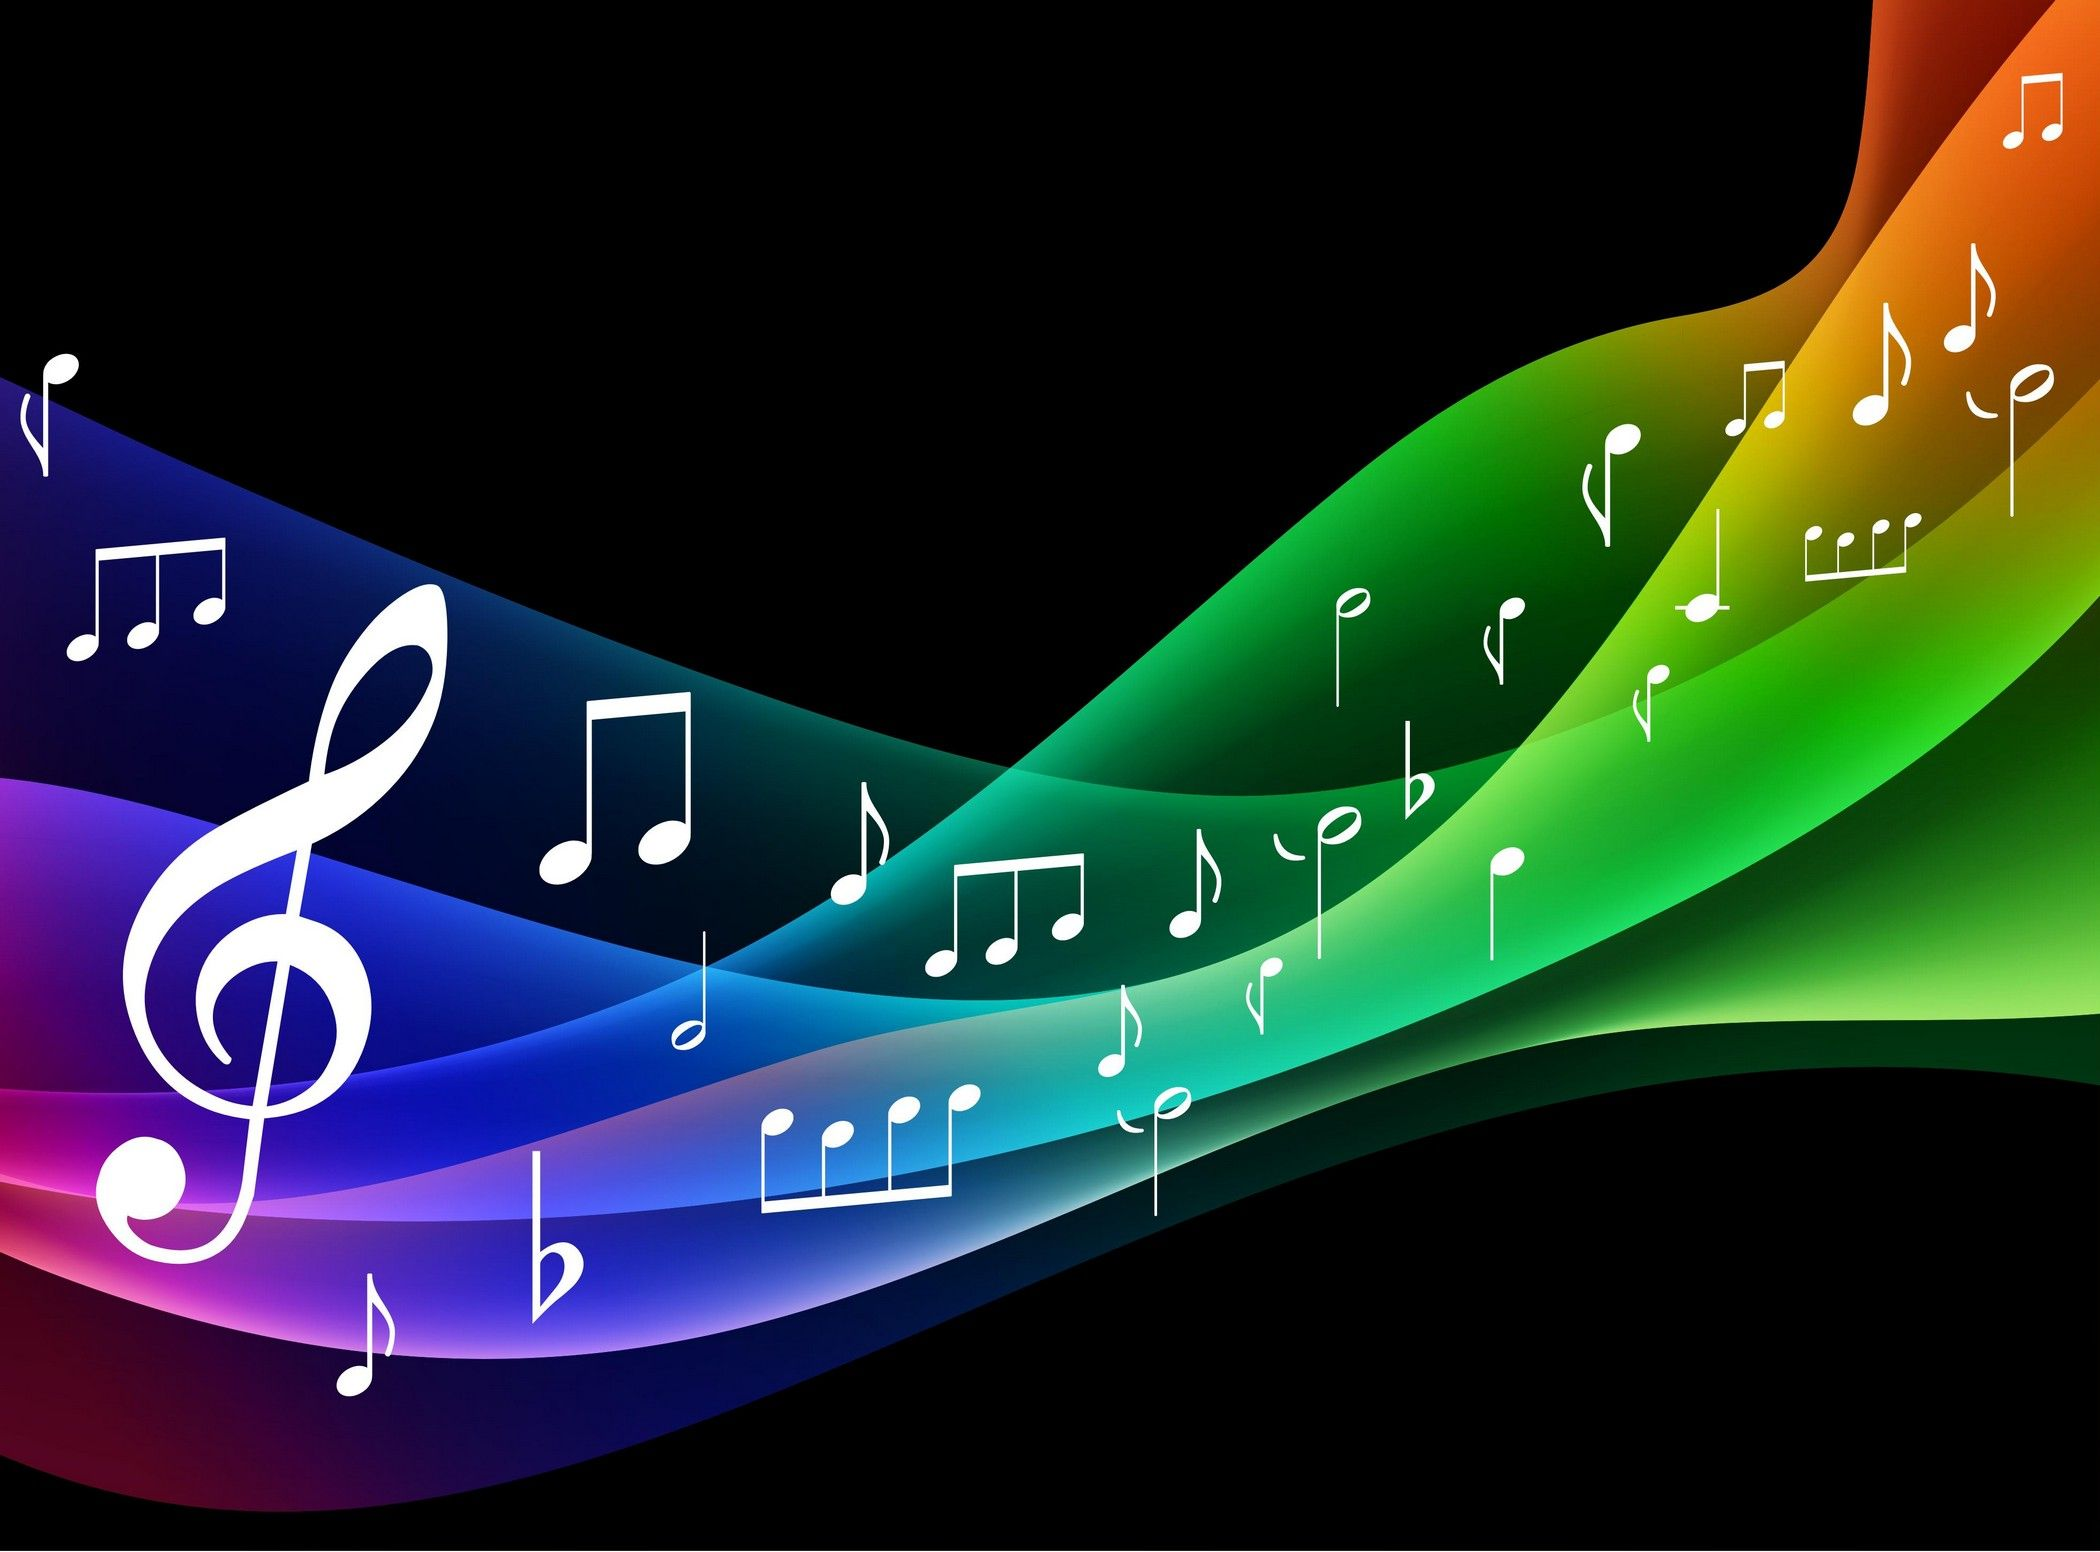 Music Vector Backgrounds Music Background Vector [EPS